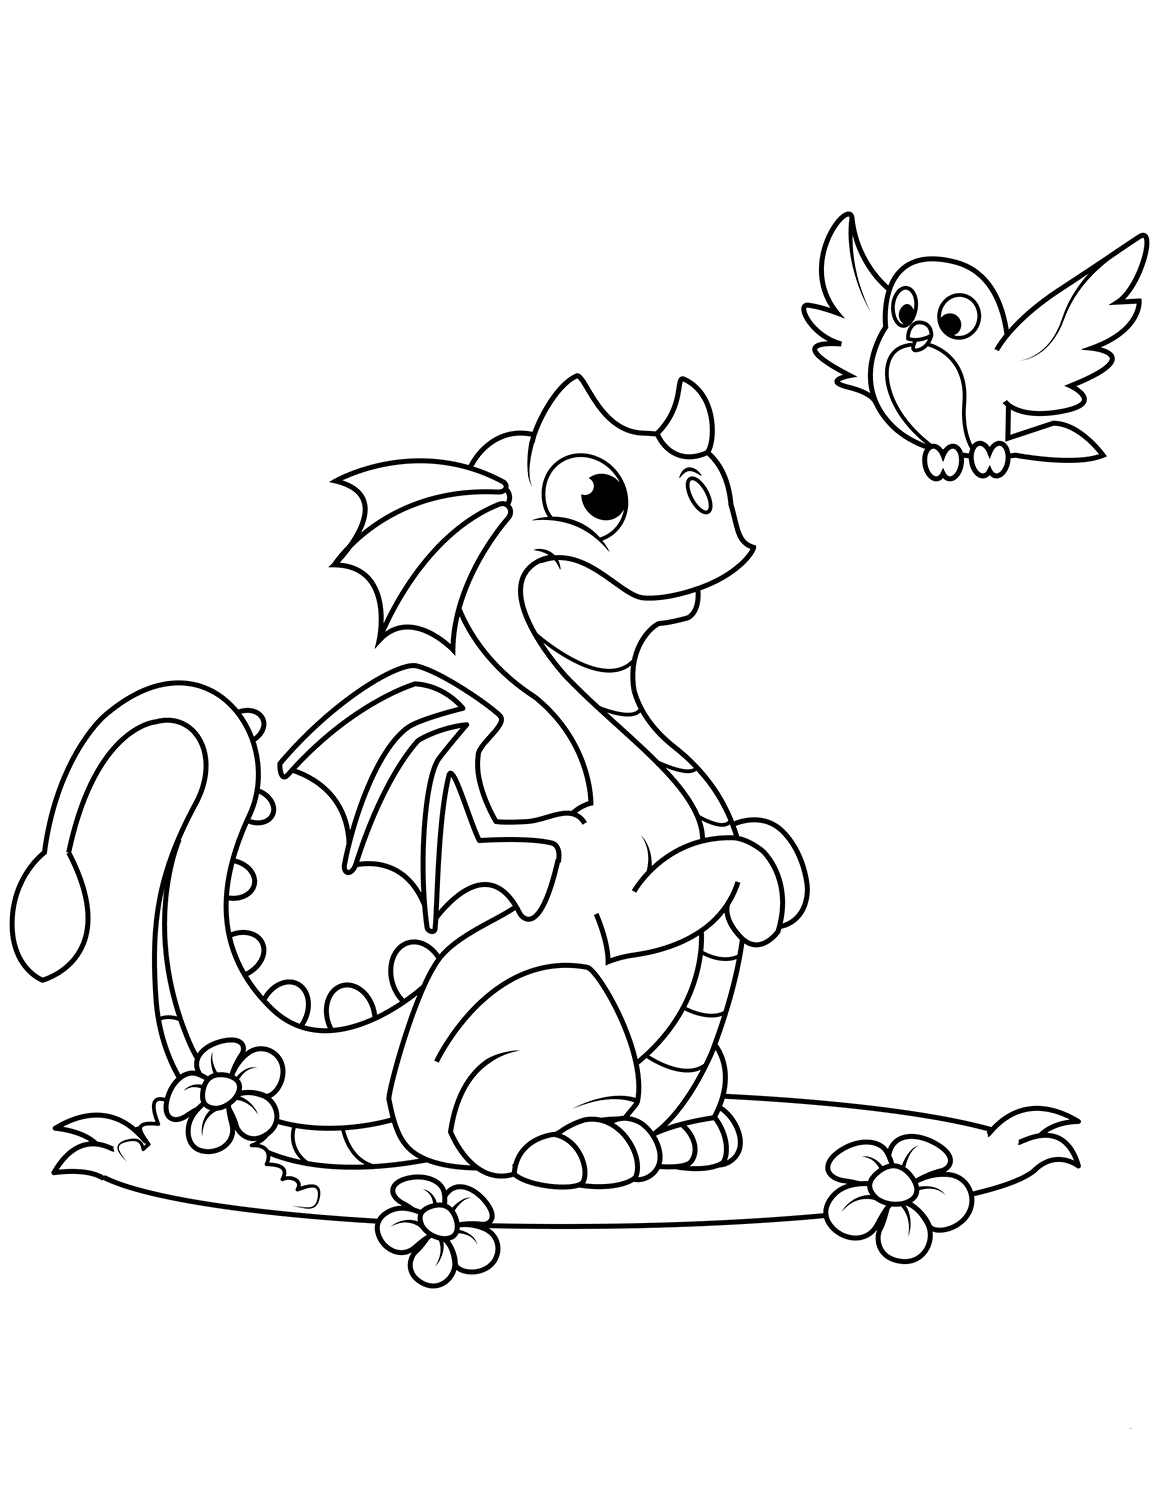 35 Free Printable Dragon Coloring Pages